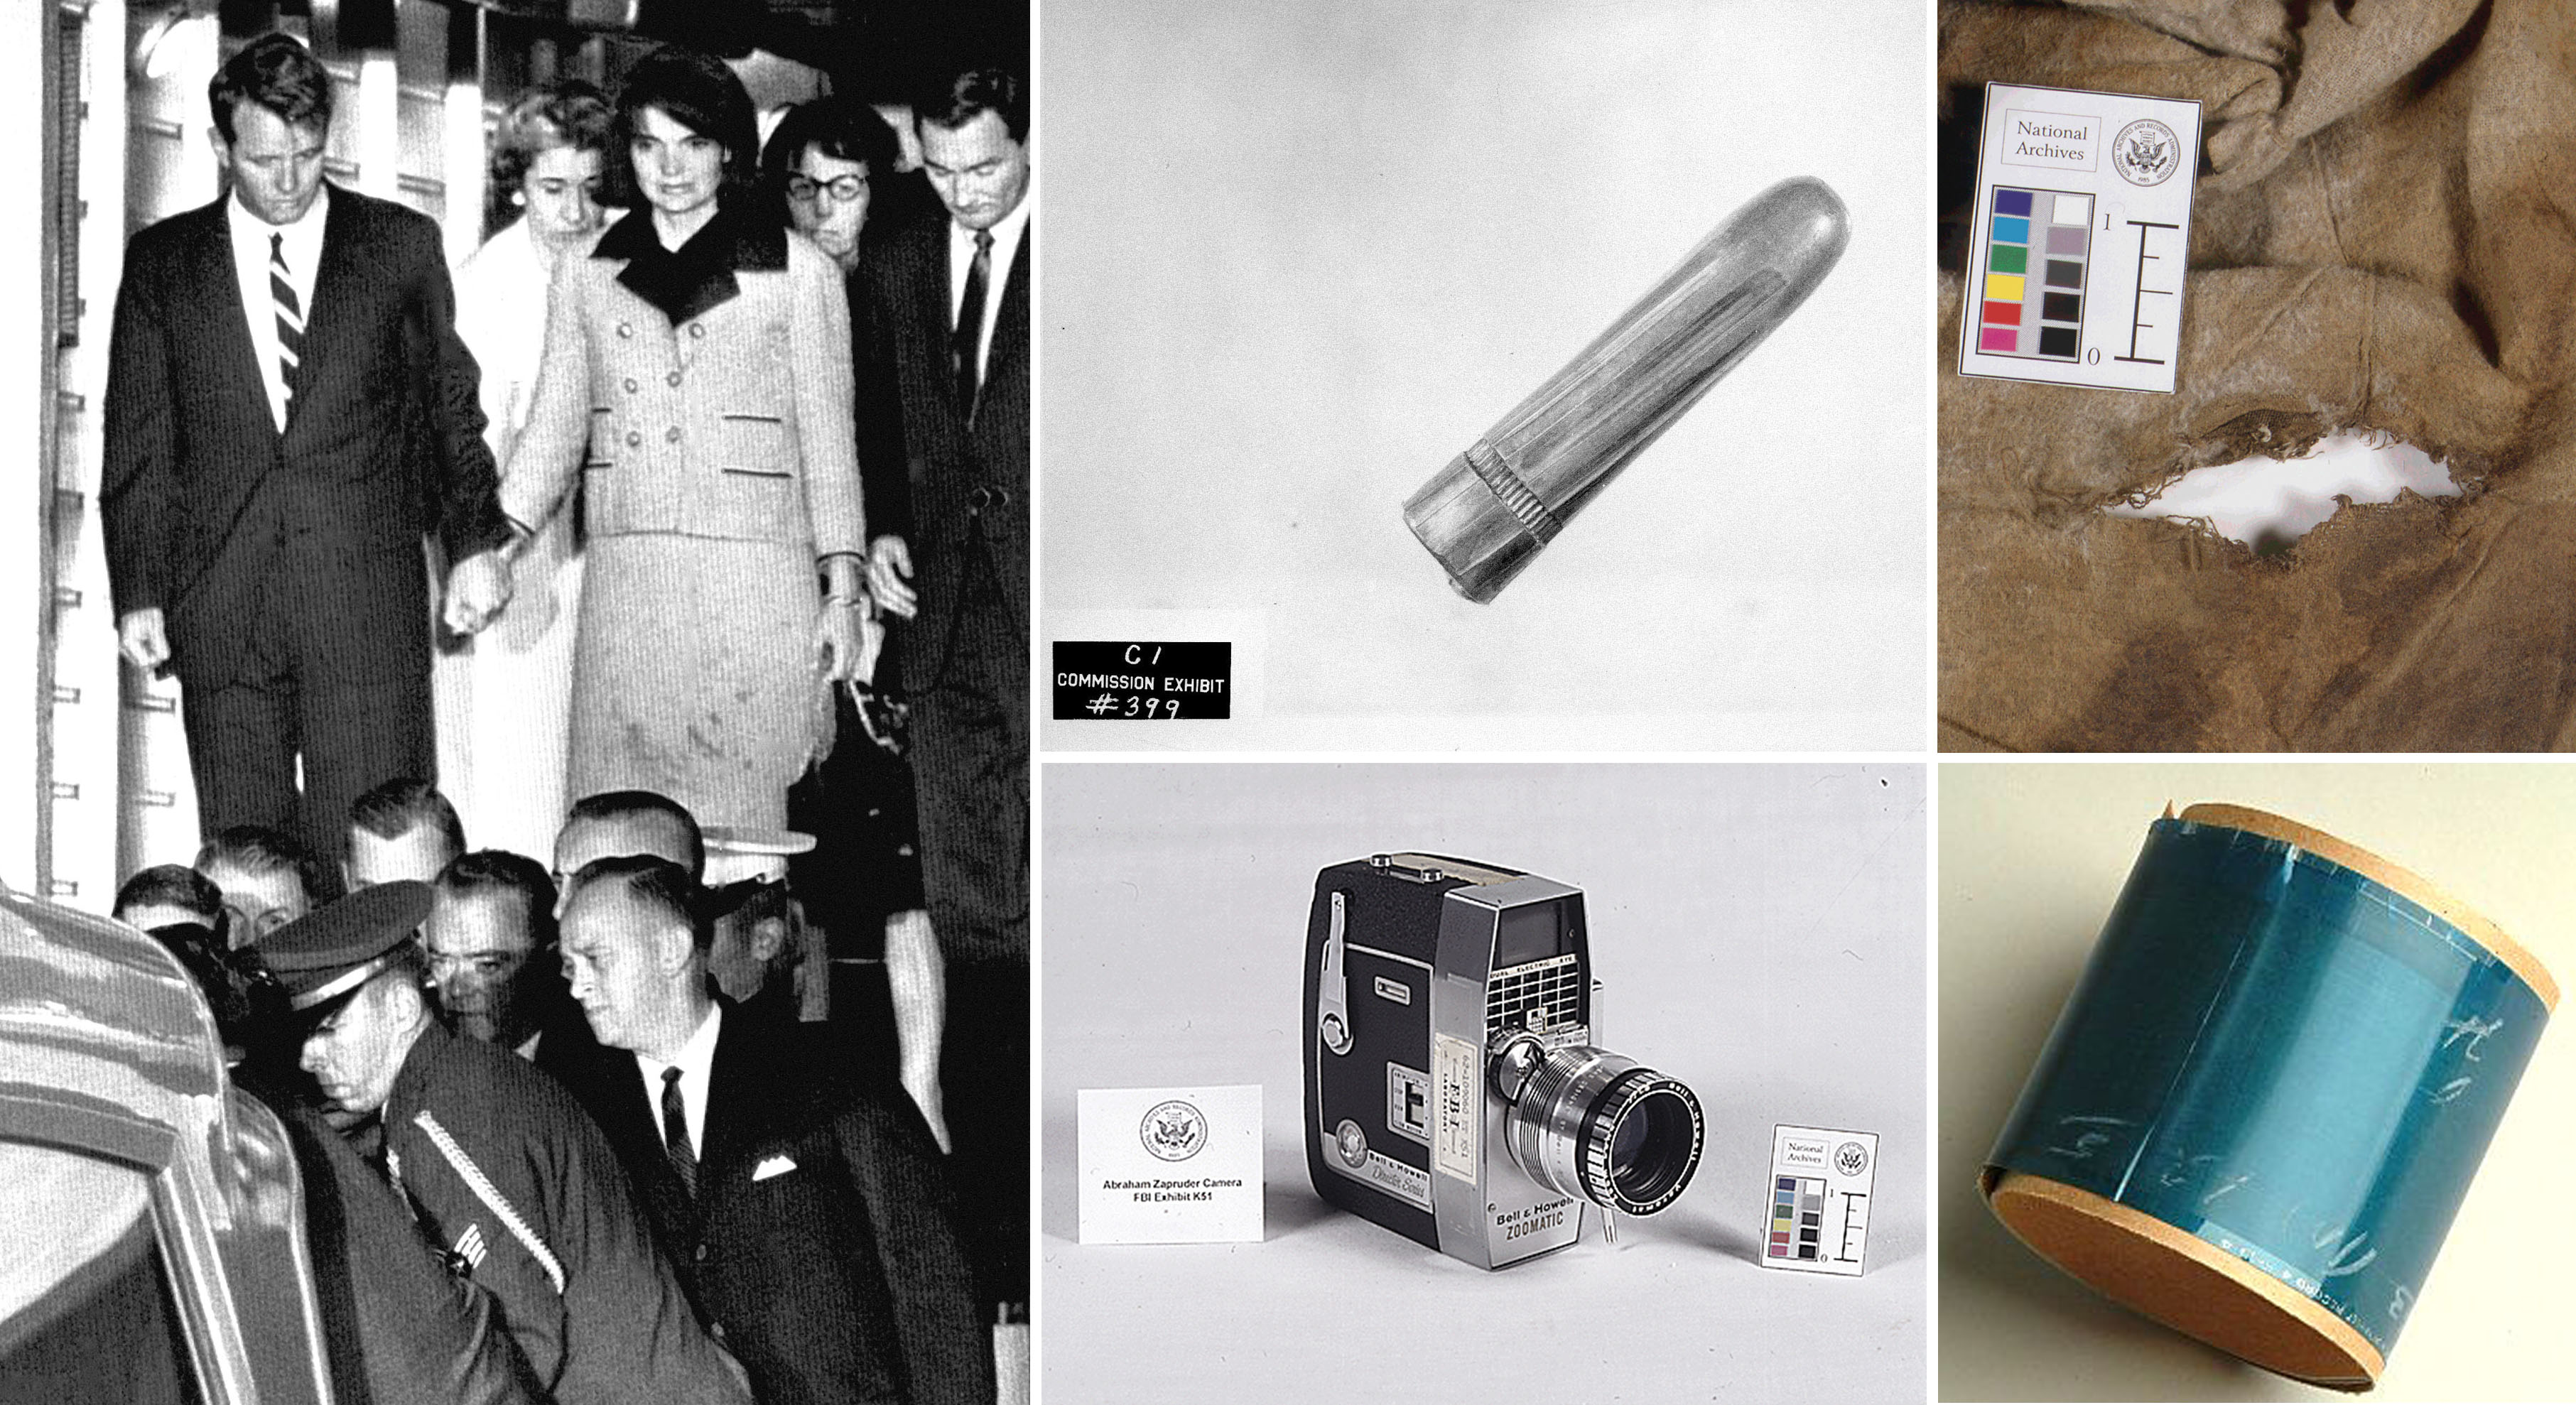 Artifacts from the Kennedy assassination that are preserved in the National Archives include: The bloodstained outfit Jacqueline Kennedy refused to change out of until her return to Washington a bullet found on a stretcher at Parkla